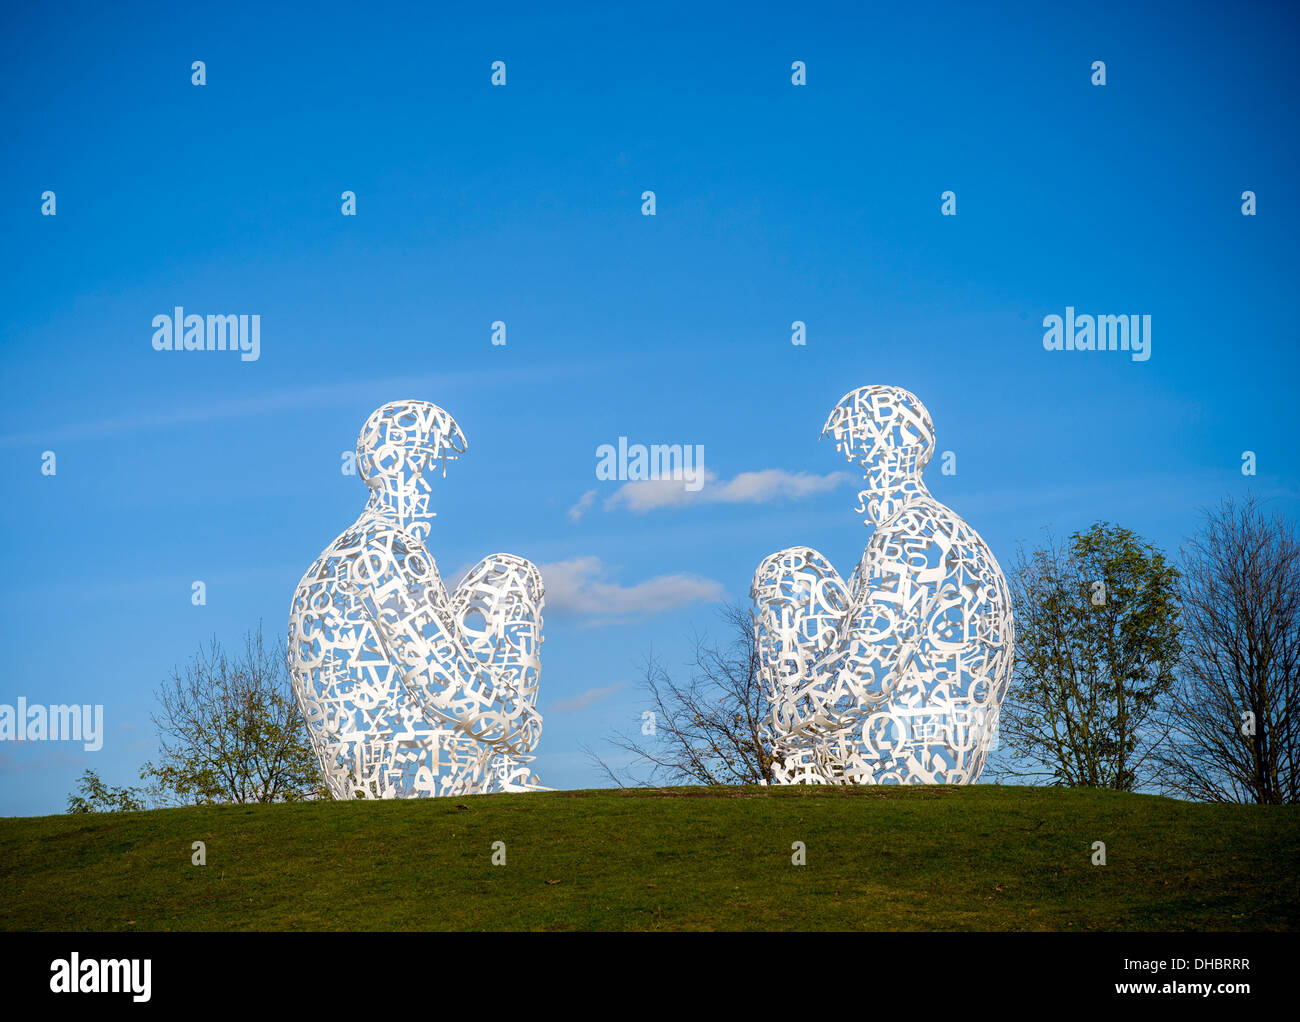 Mirror sculpture by Jaume Plensa at Yorkshire Sculpture Park, UK. - Stock Image